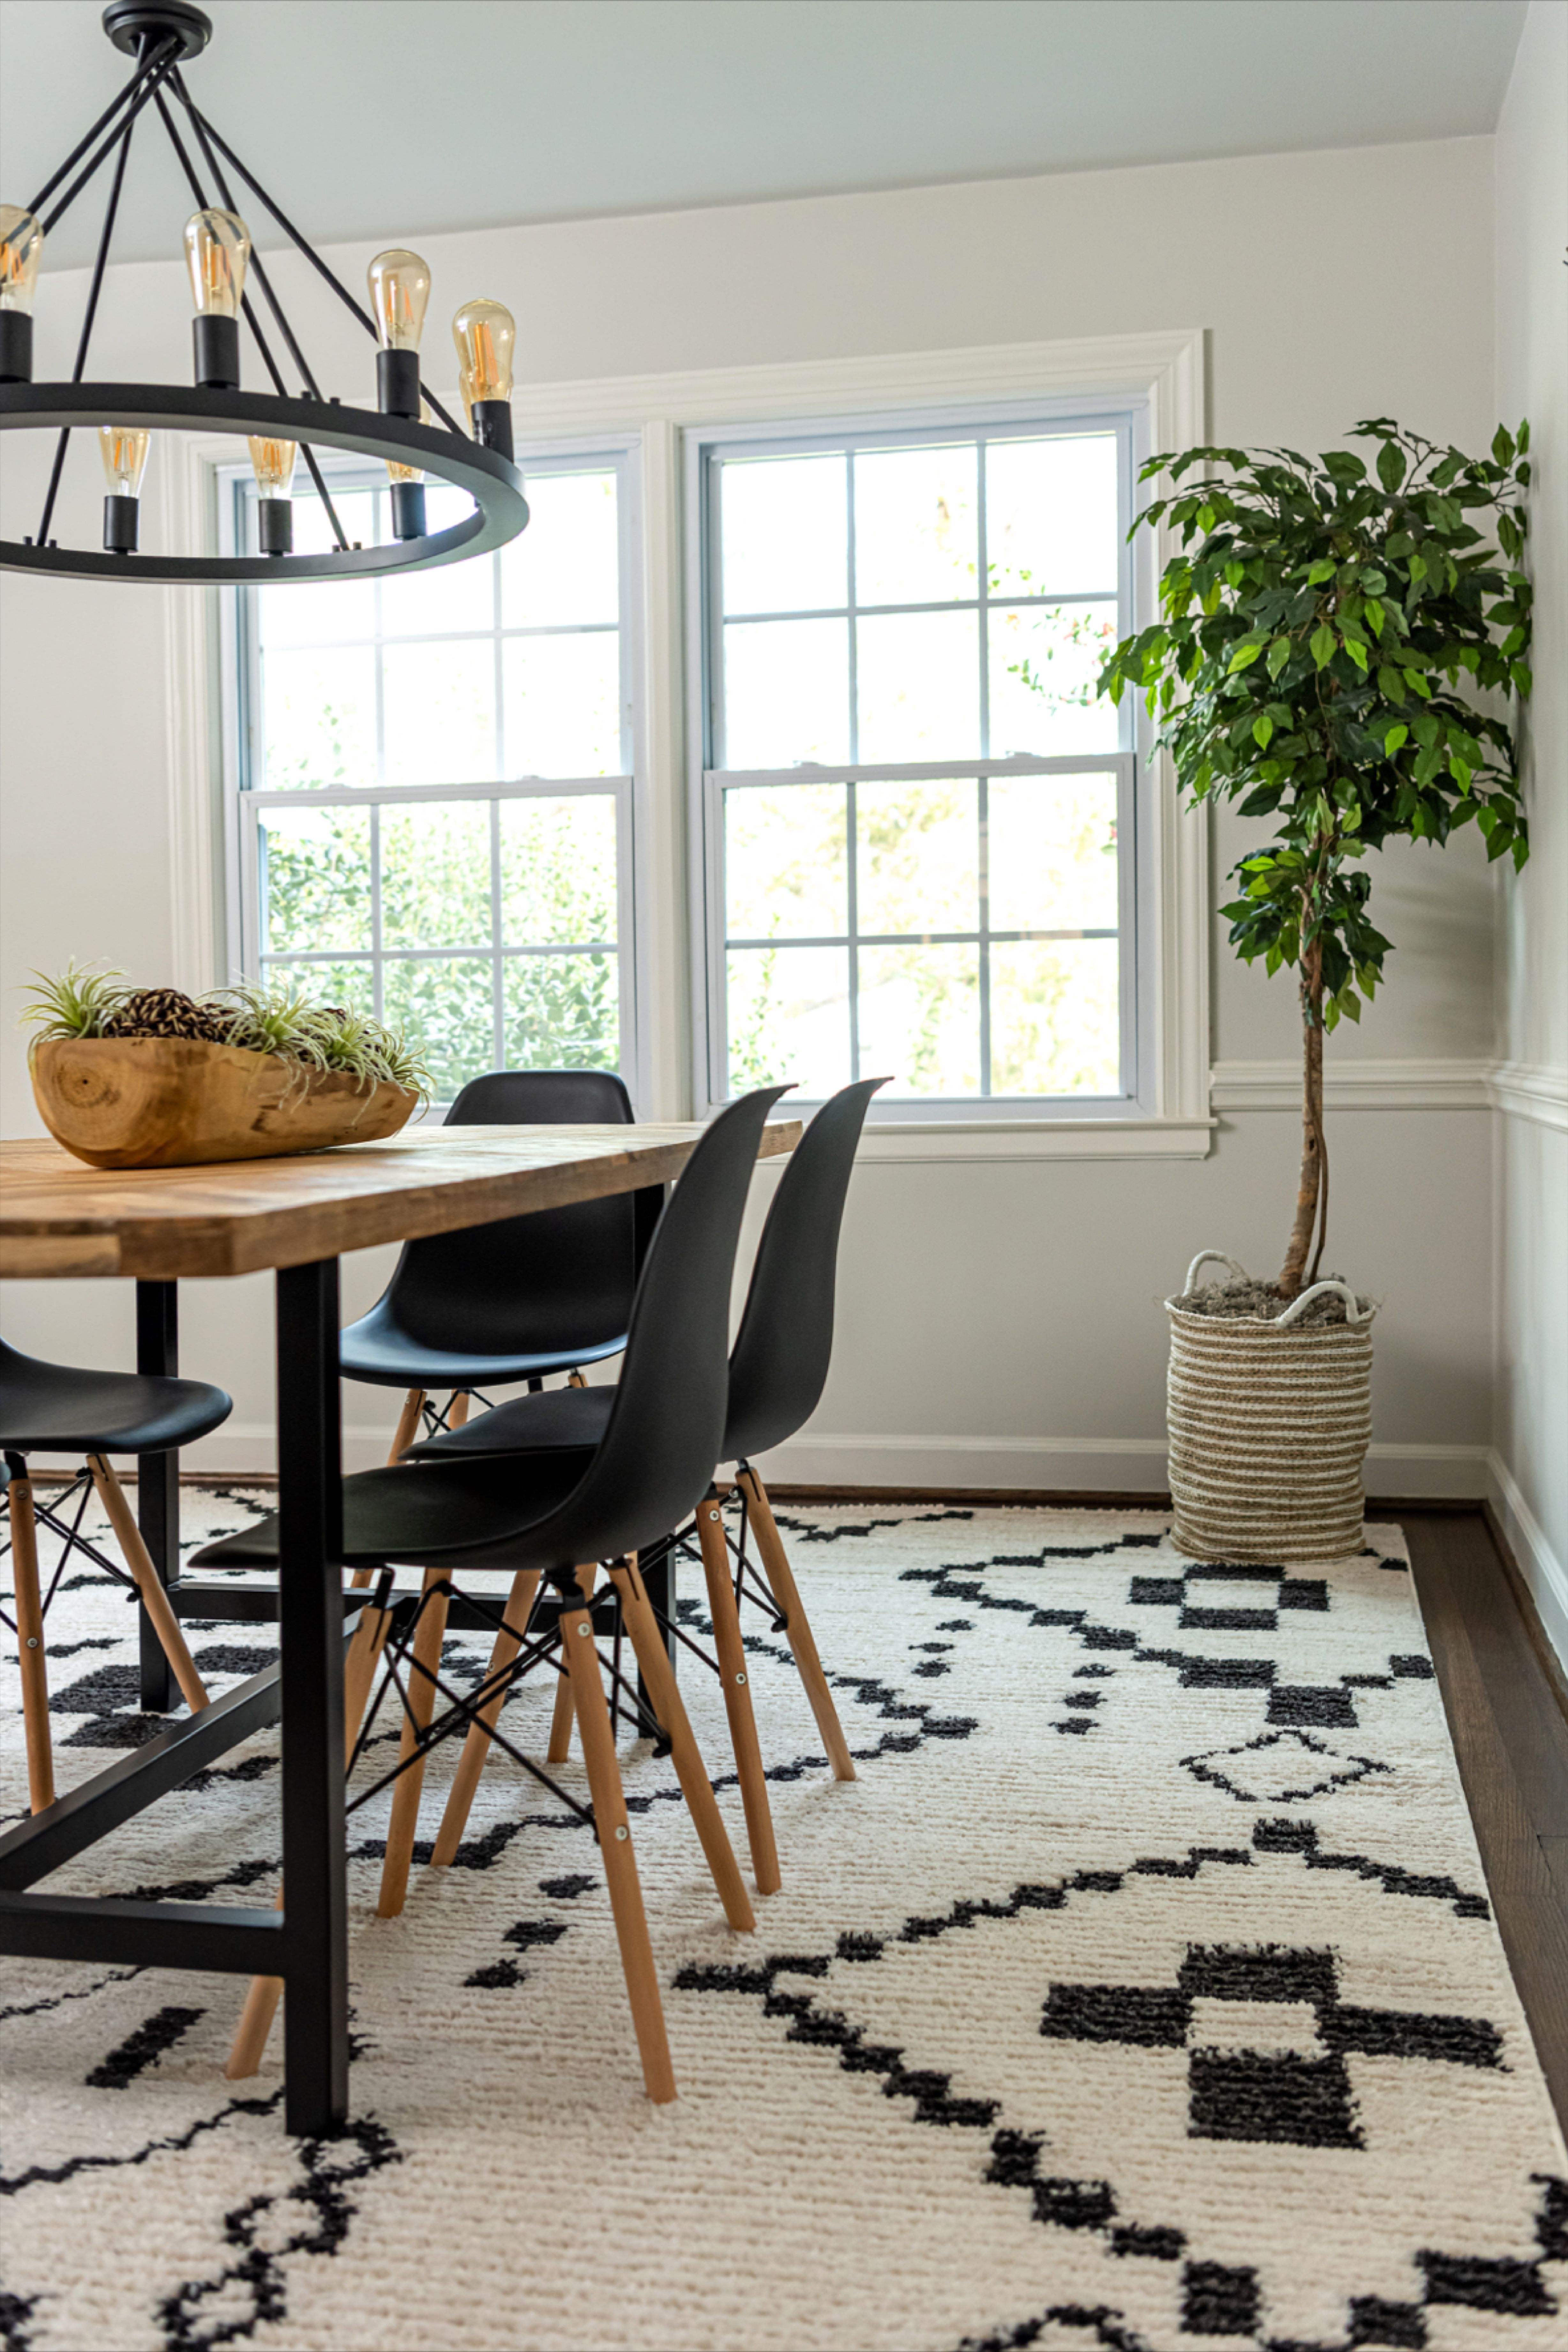 Style your home with our Morocco rug in order to create a minimal dining room decor!  #homedecor #minimaldecor #minimaldiningroom #diningroomdecor